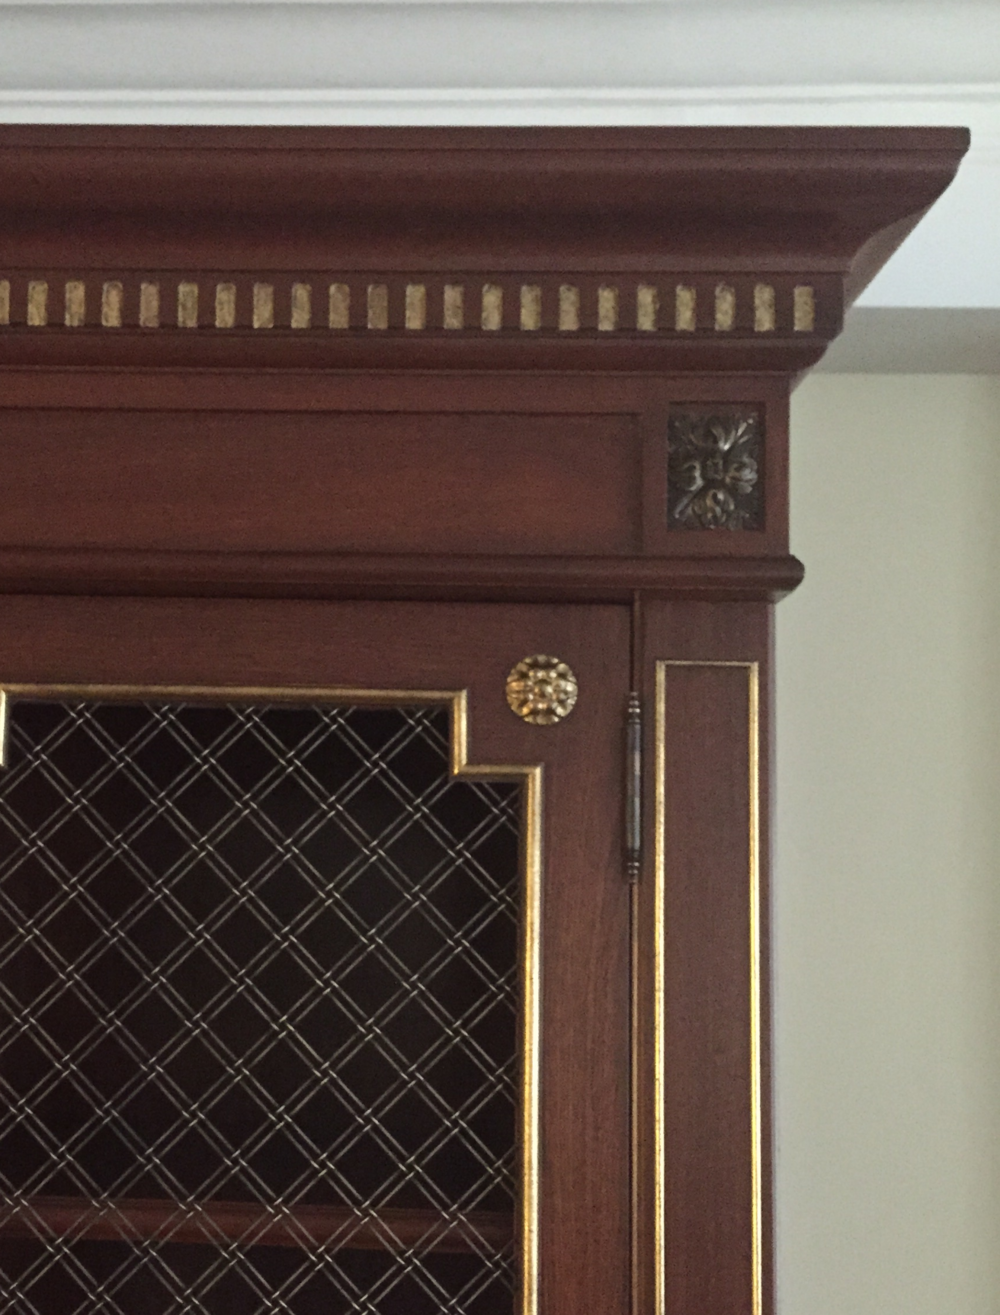 A detail of the finish and custom cast brass rosettes. Victoria & Son